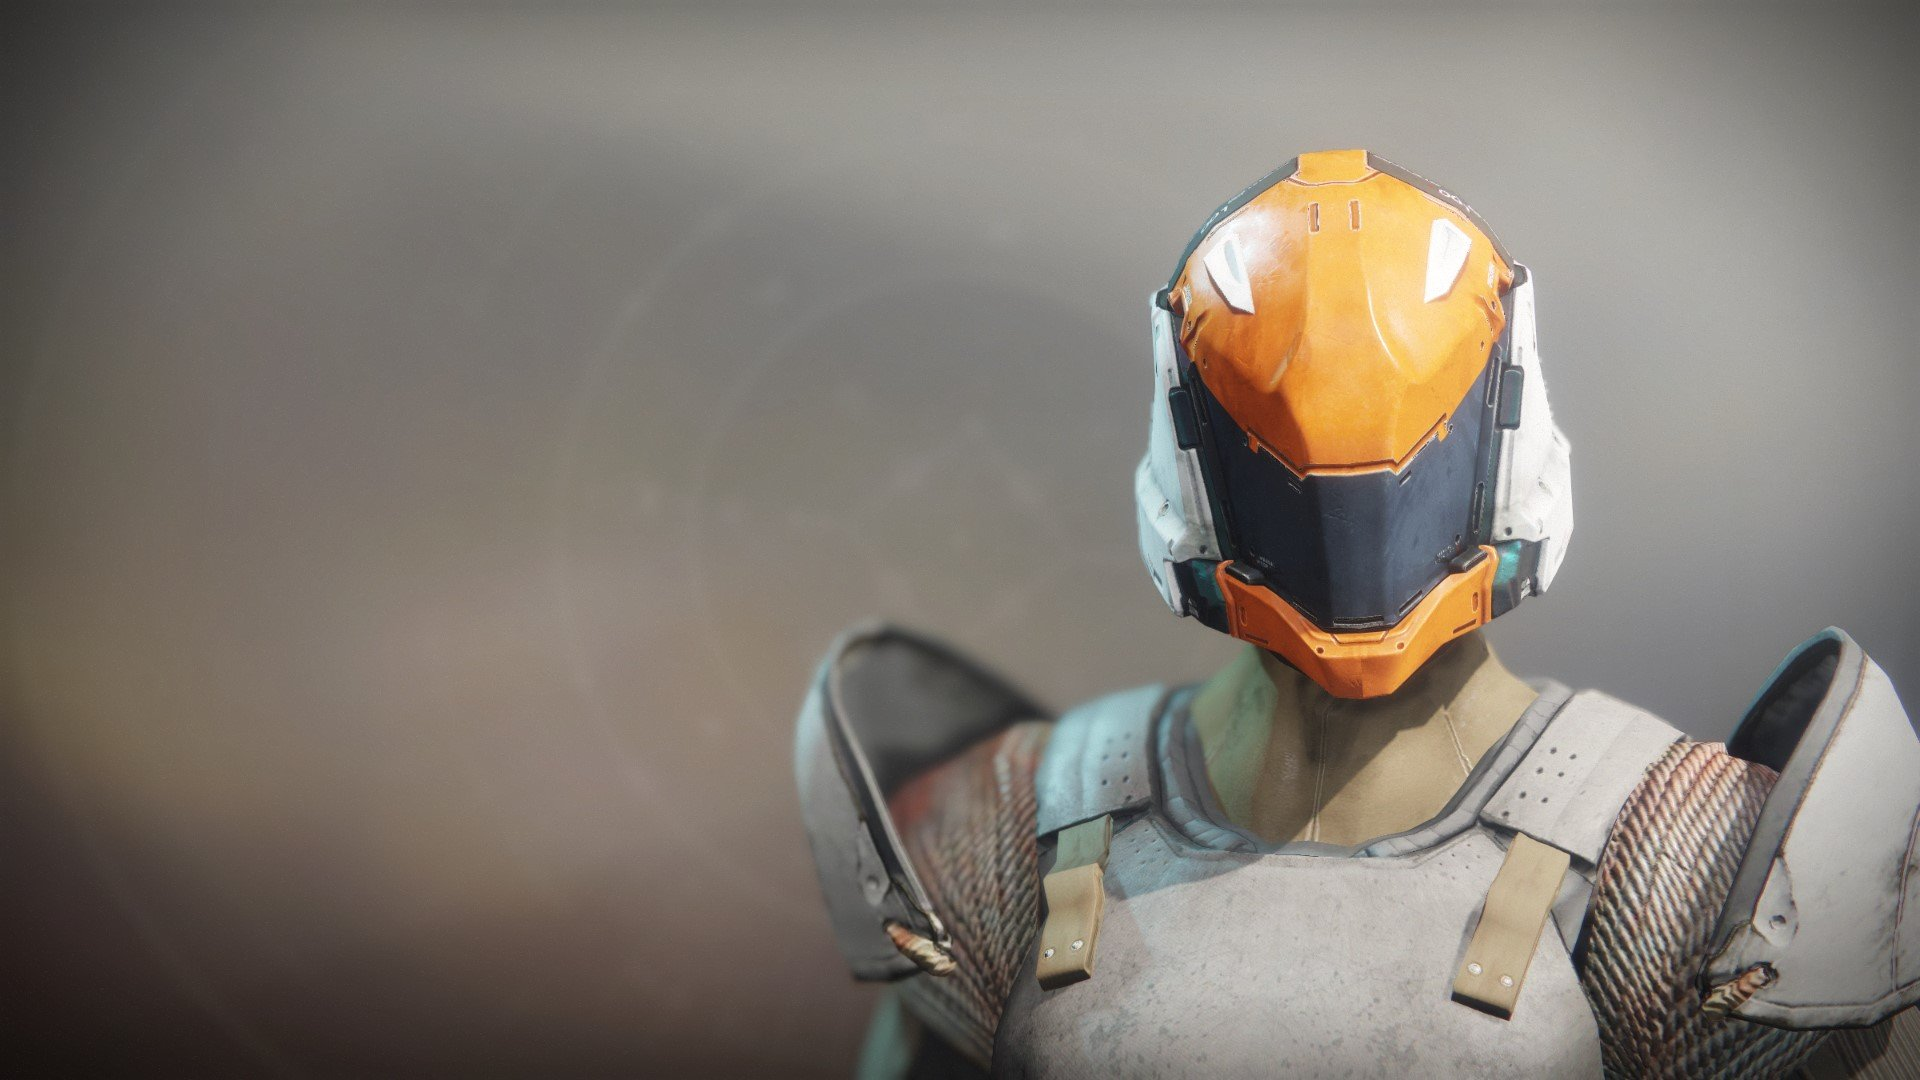 An in-game render of the Steadfast Titan Ornament.